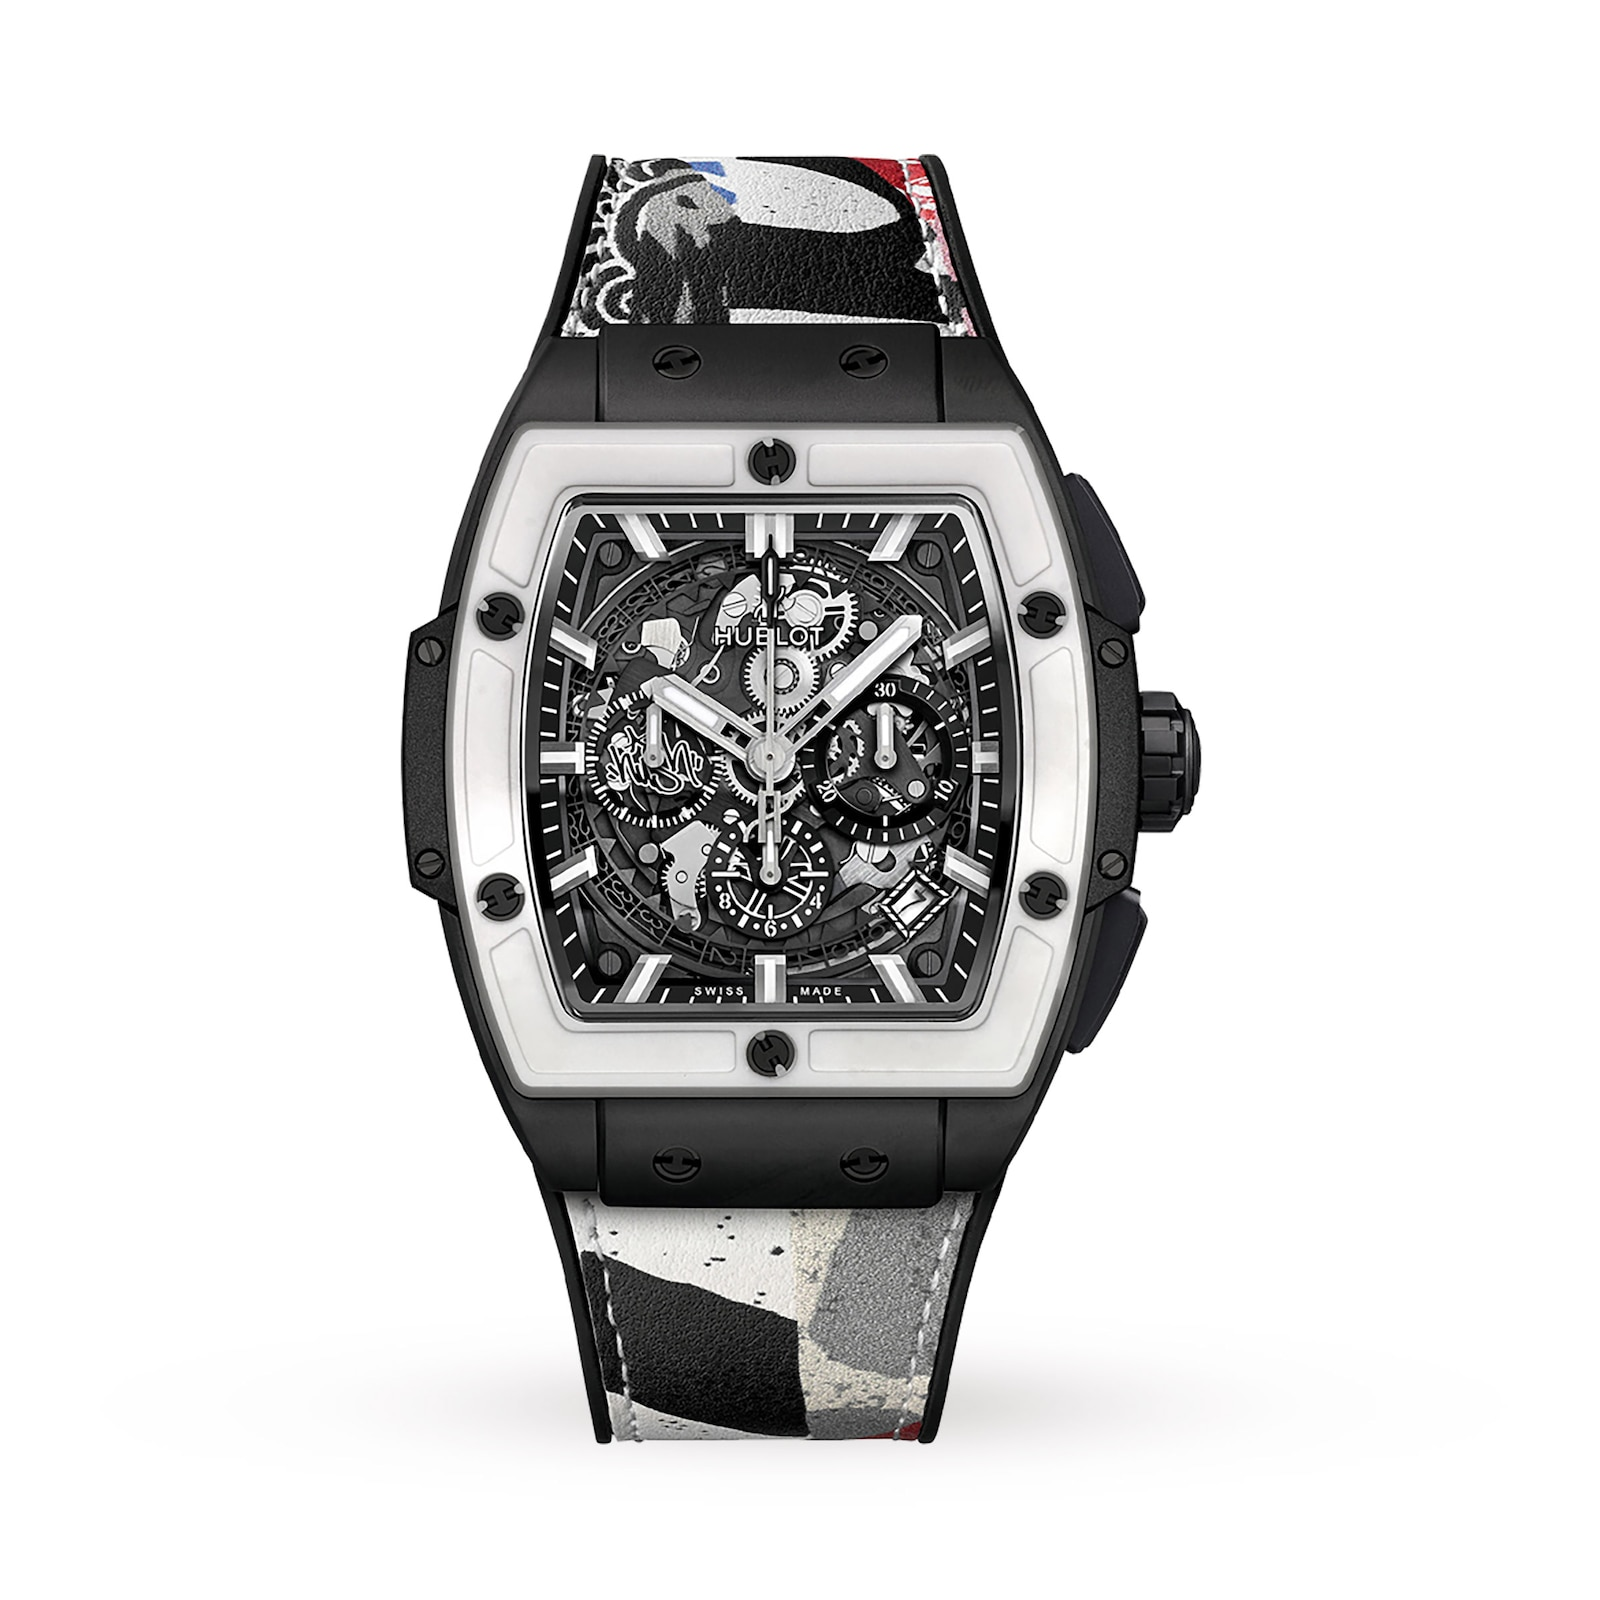 Hublot Hublot Spirit of Big Bang West Coast Ceramic Black White 42mm Mens Watch